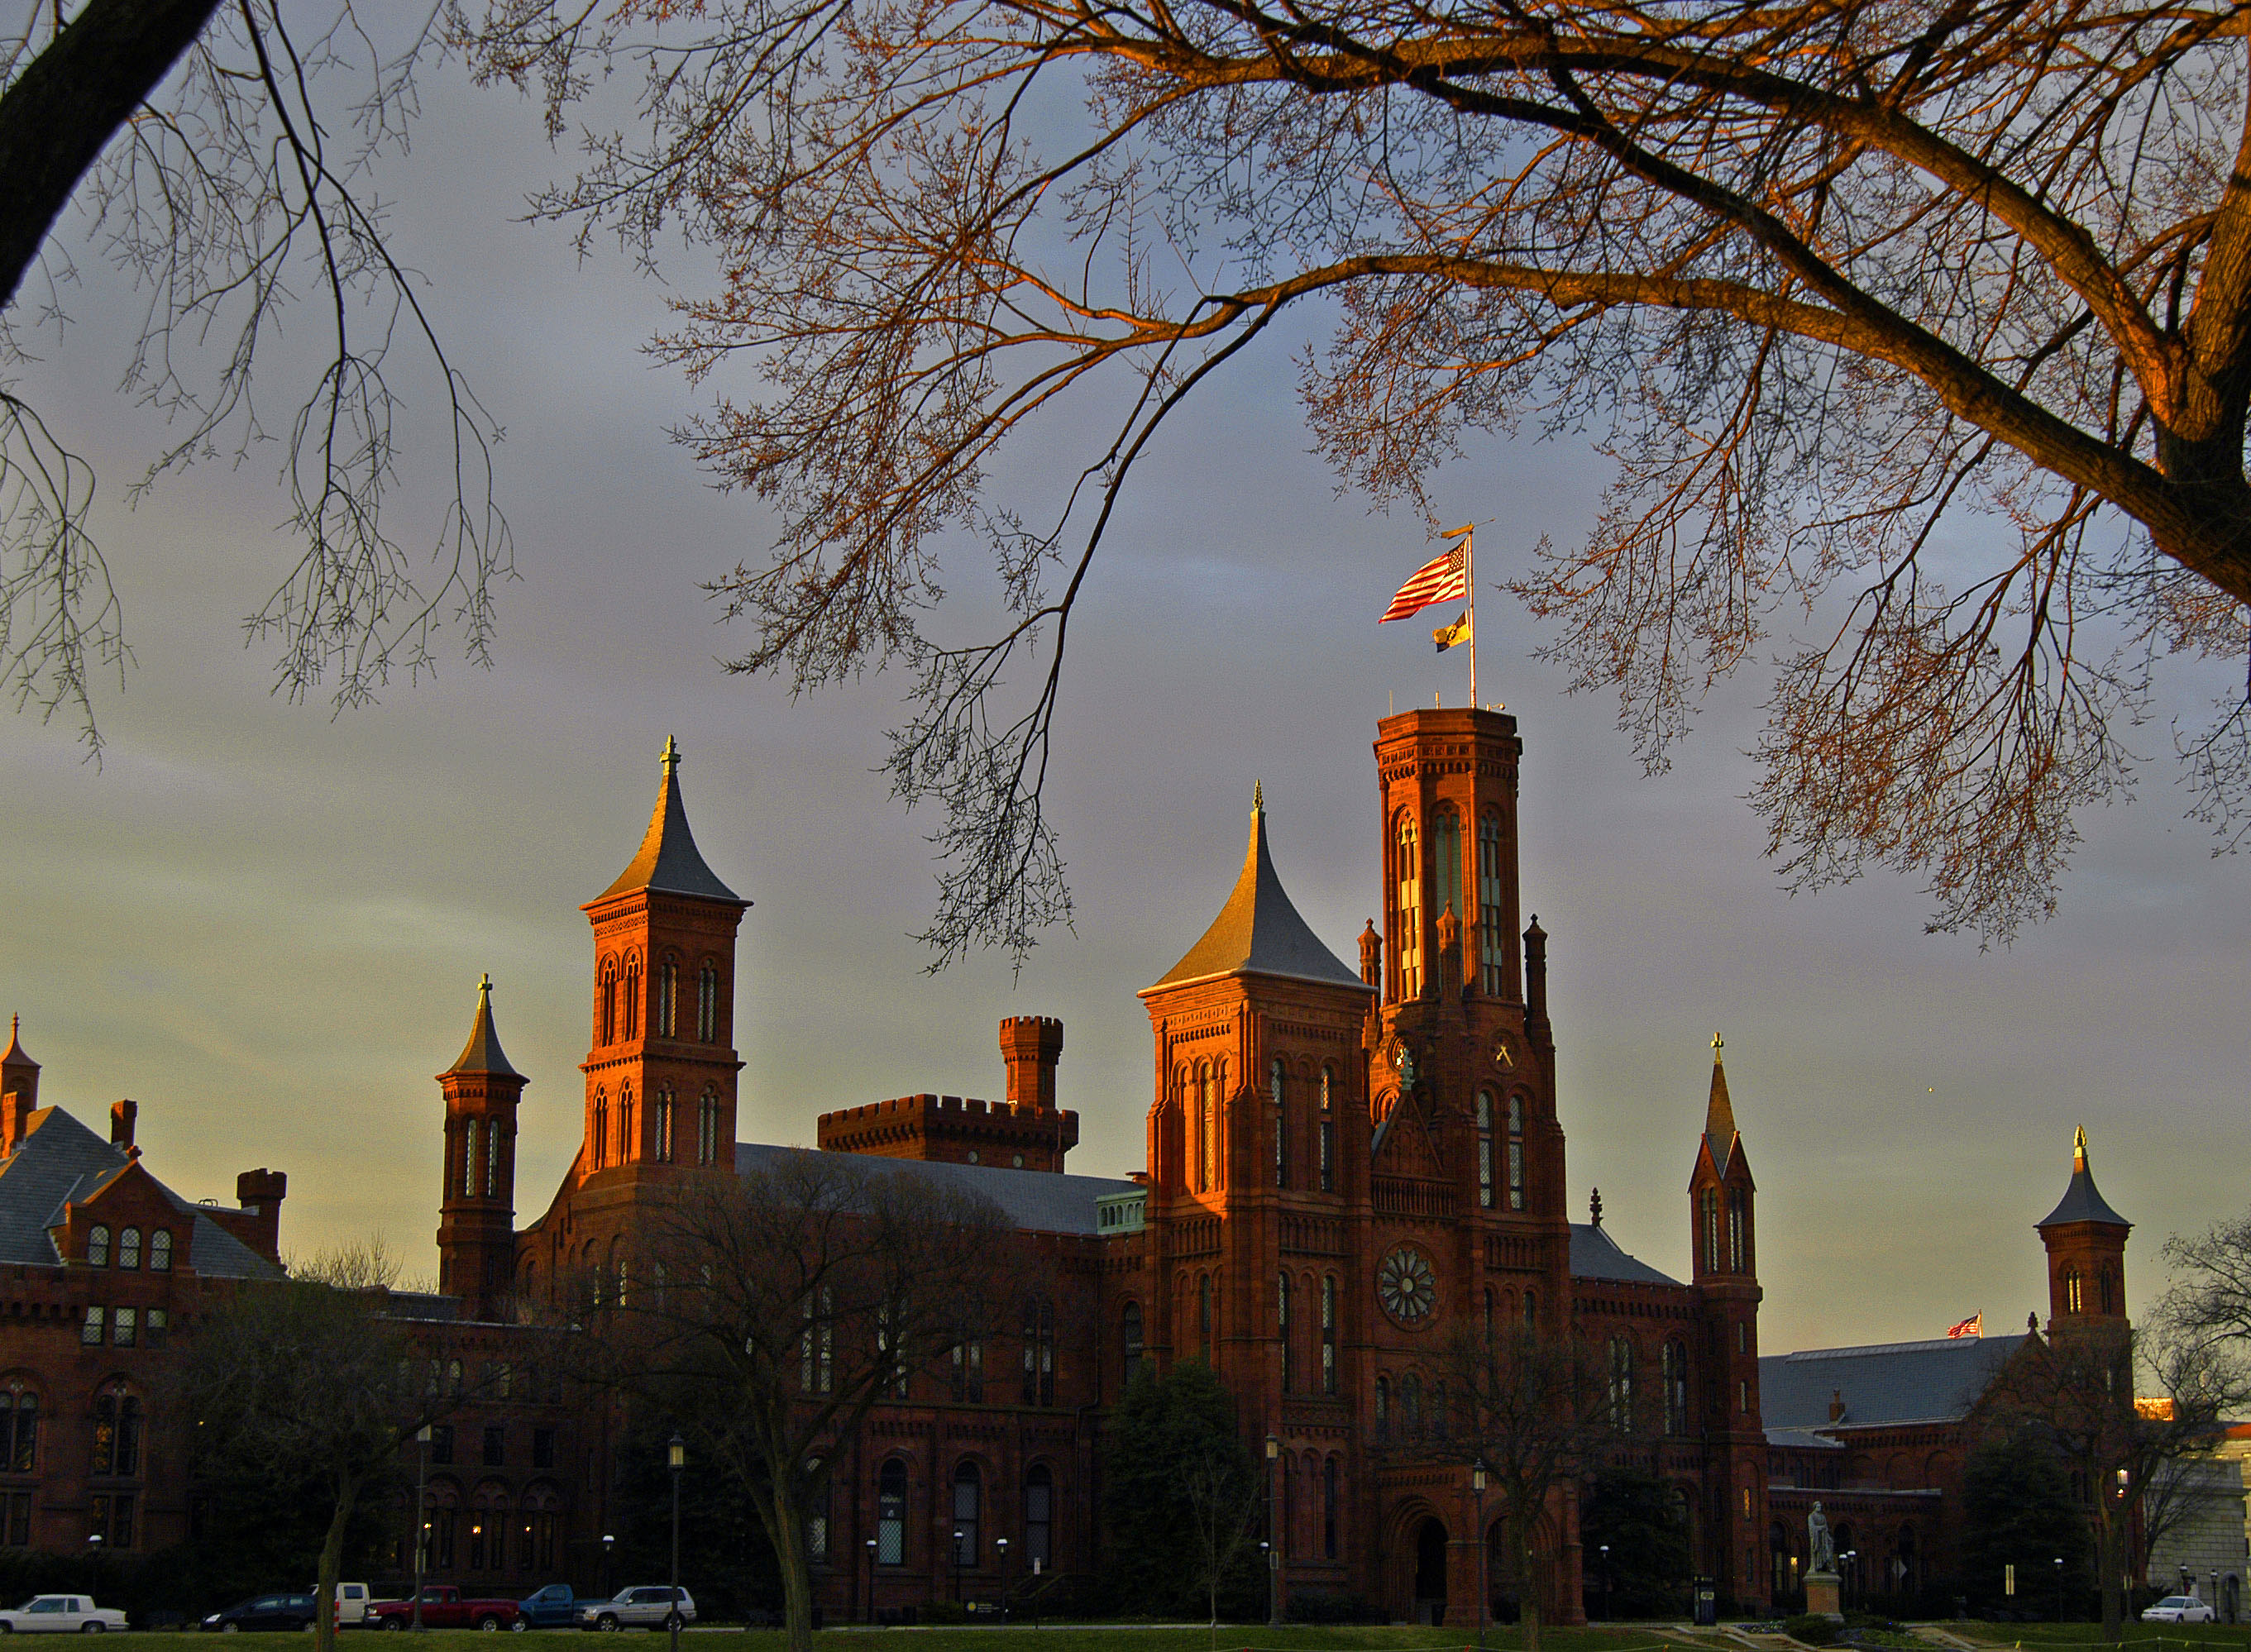 The Smithsonian Institution building at dusk. (Photo by Eric Long)